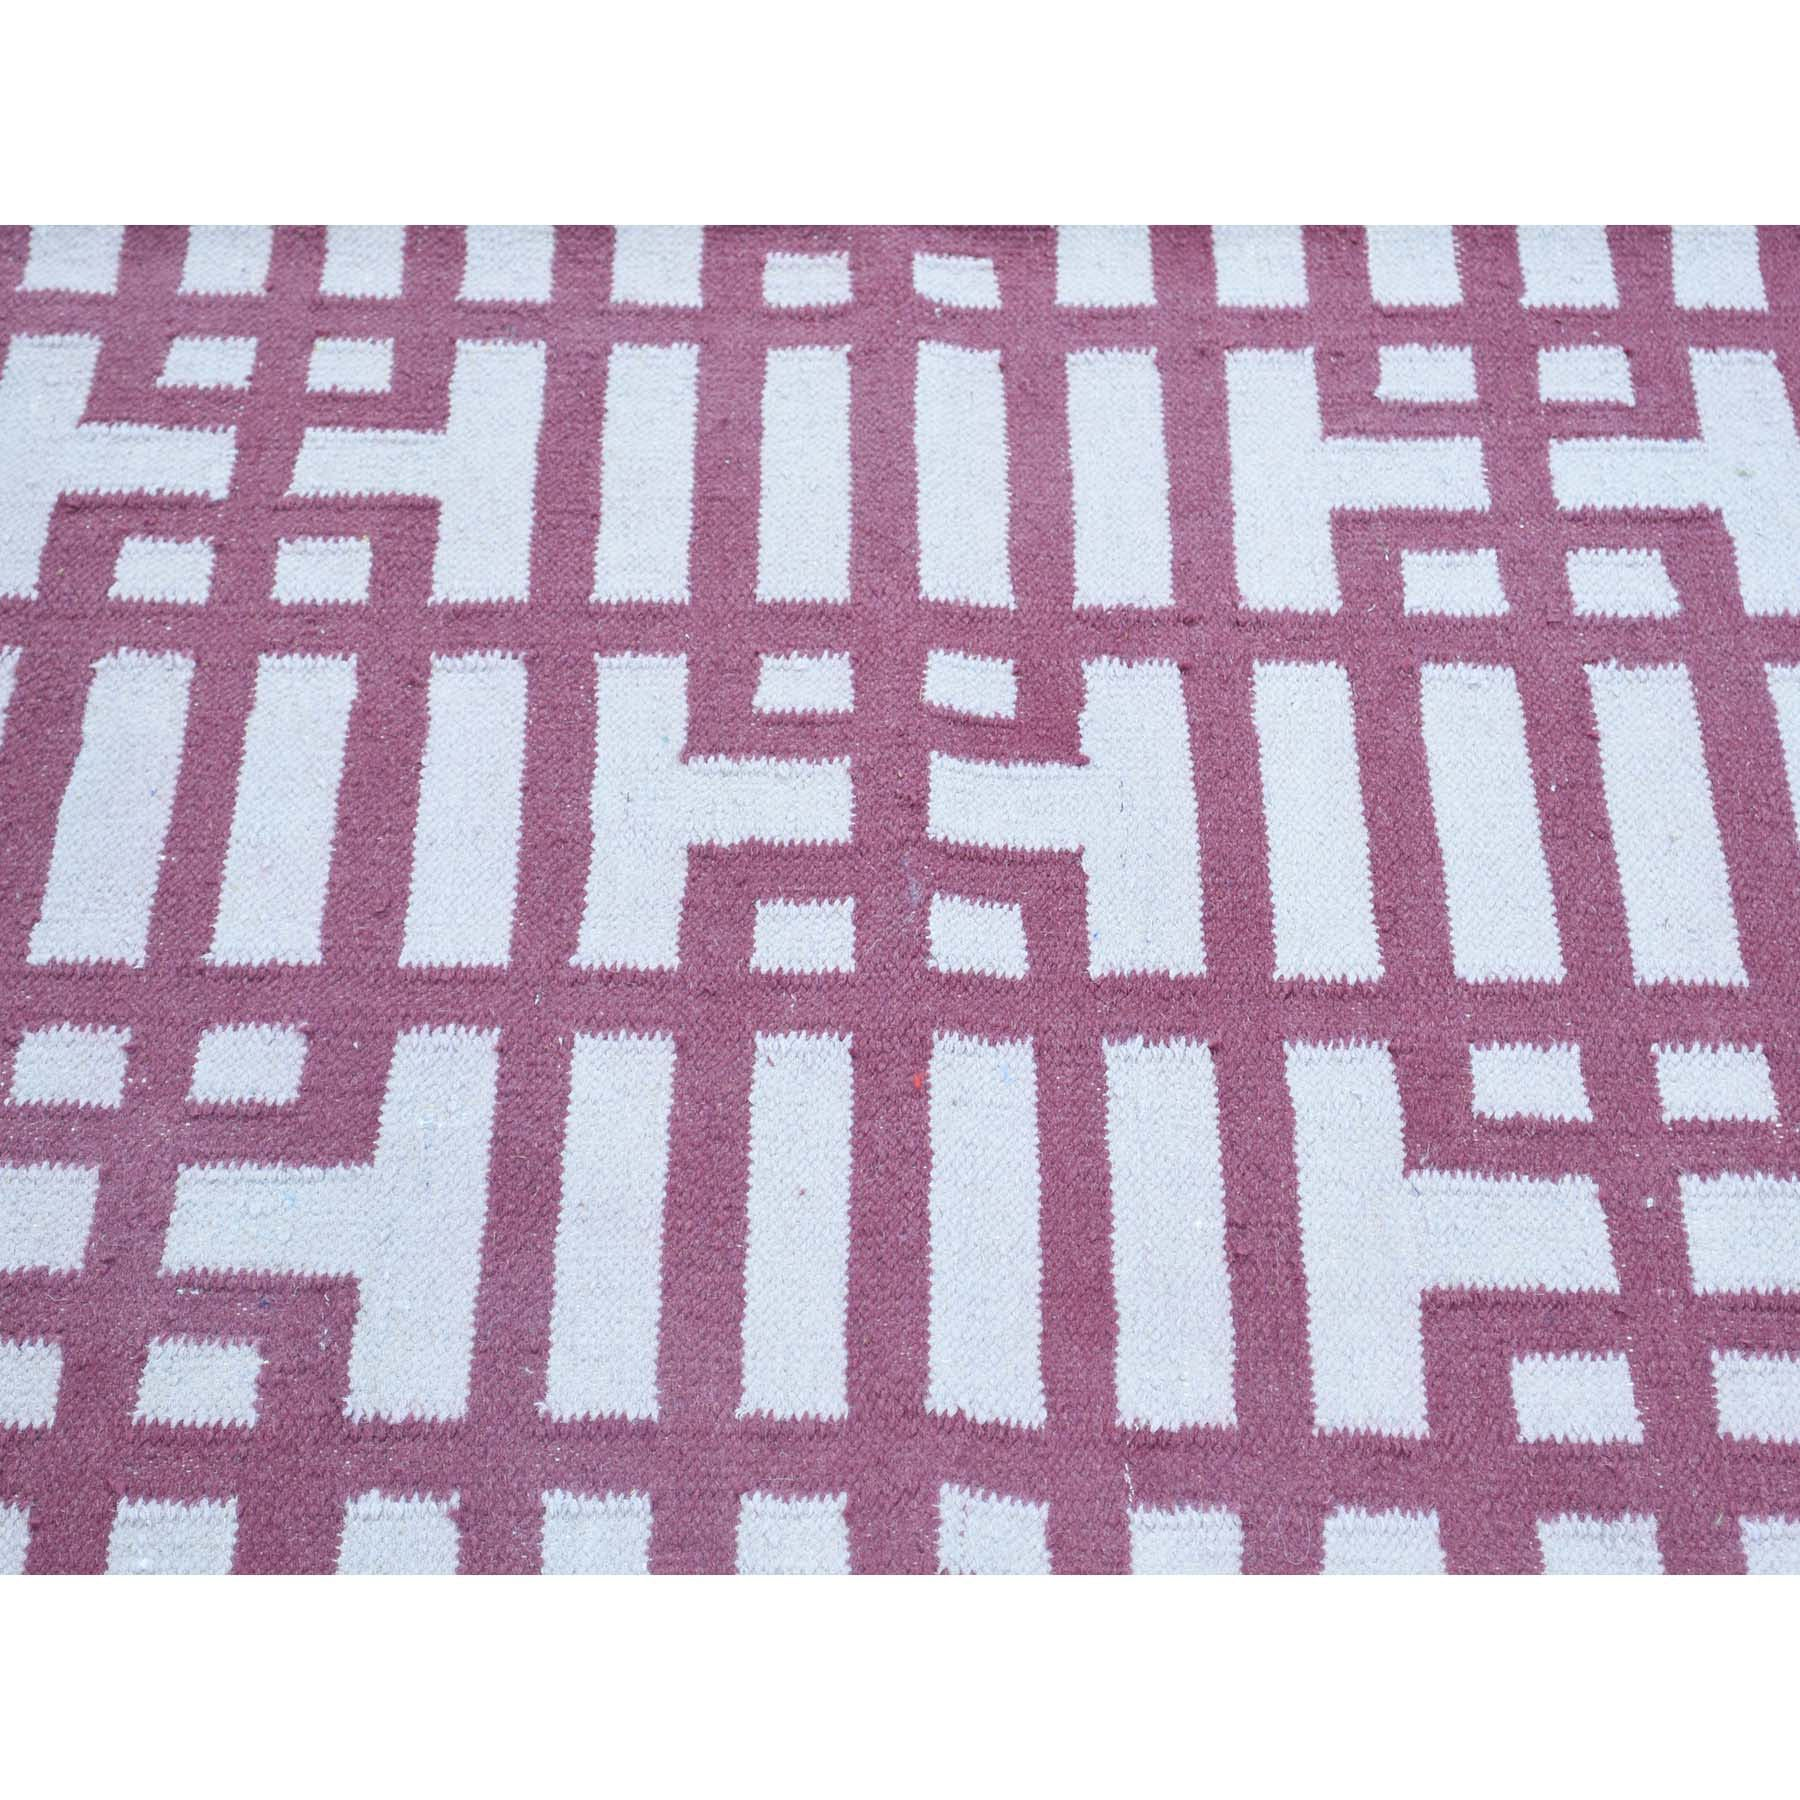 "Handmade Flat Weave Rectangle Rug > Design# SH32016 > Size: 4'-0"" x 6'-2"" [ONLINE ONLY]"